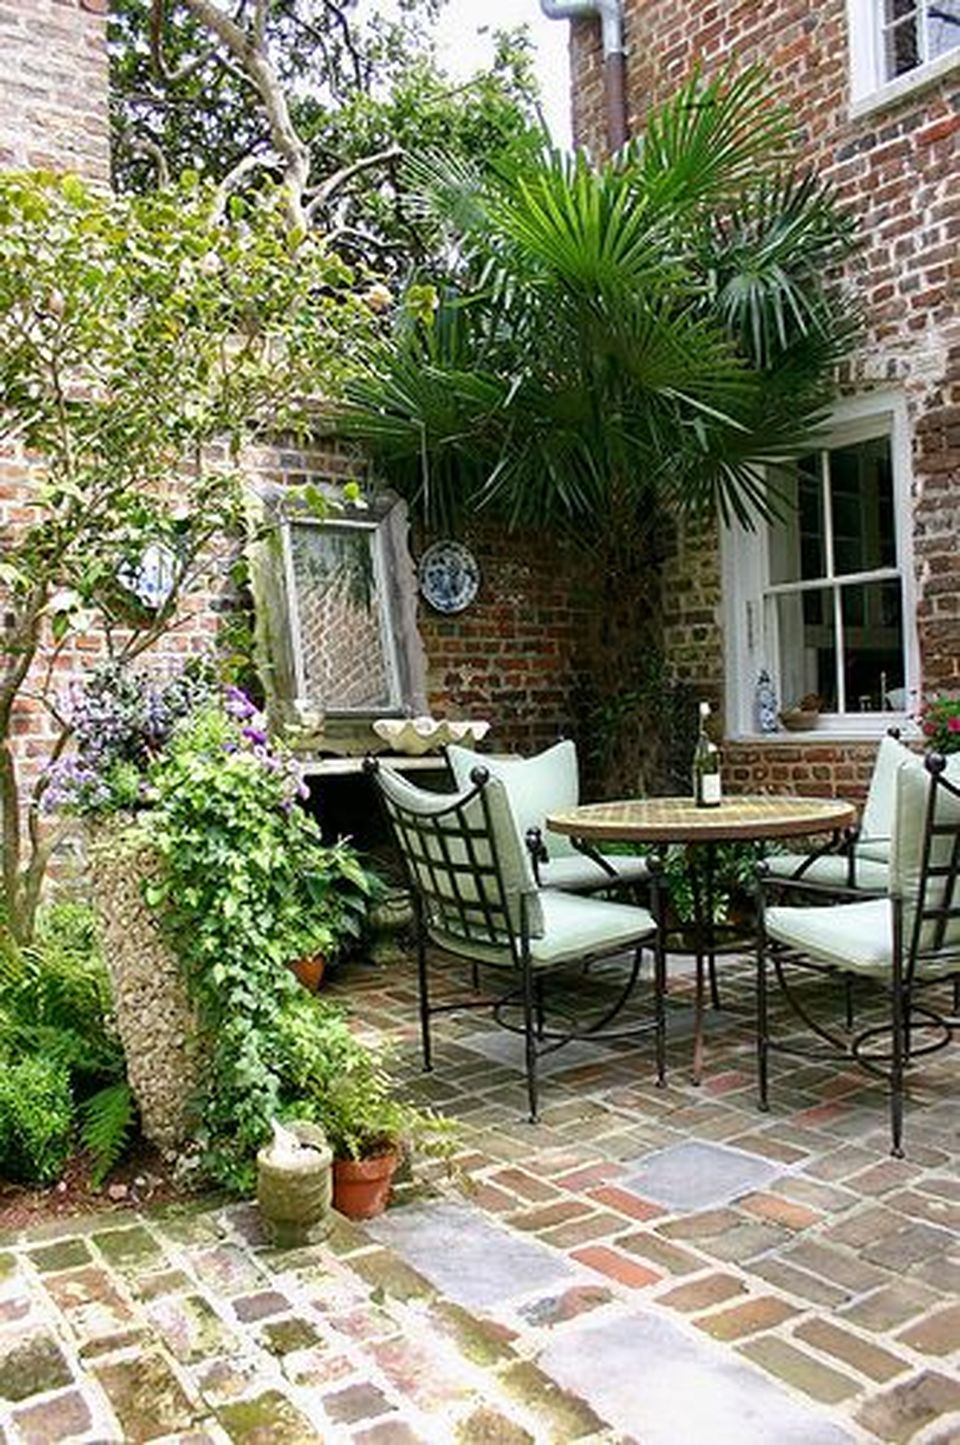 Small courtyard garden with seating area design and layout 2